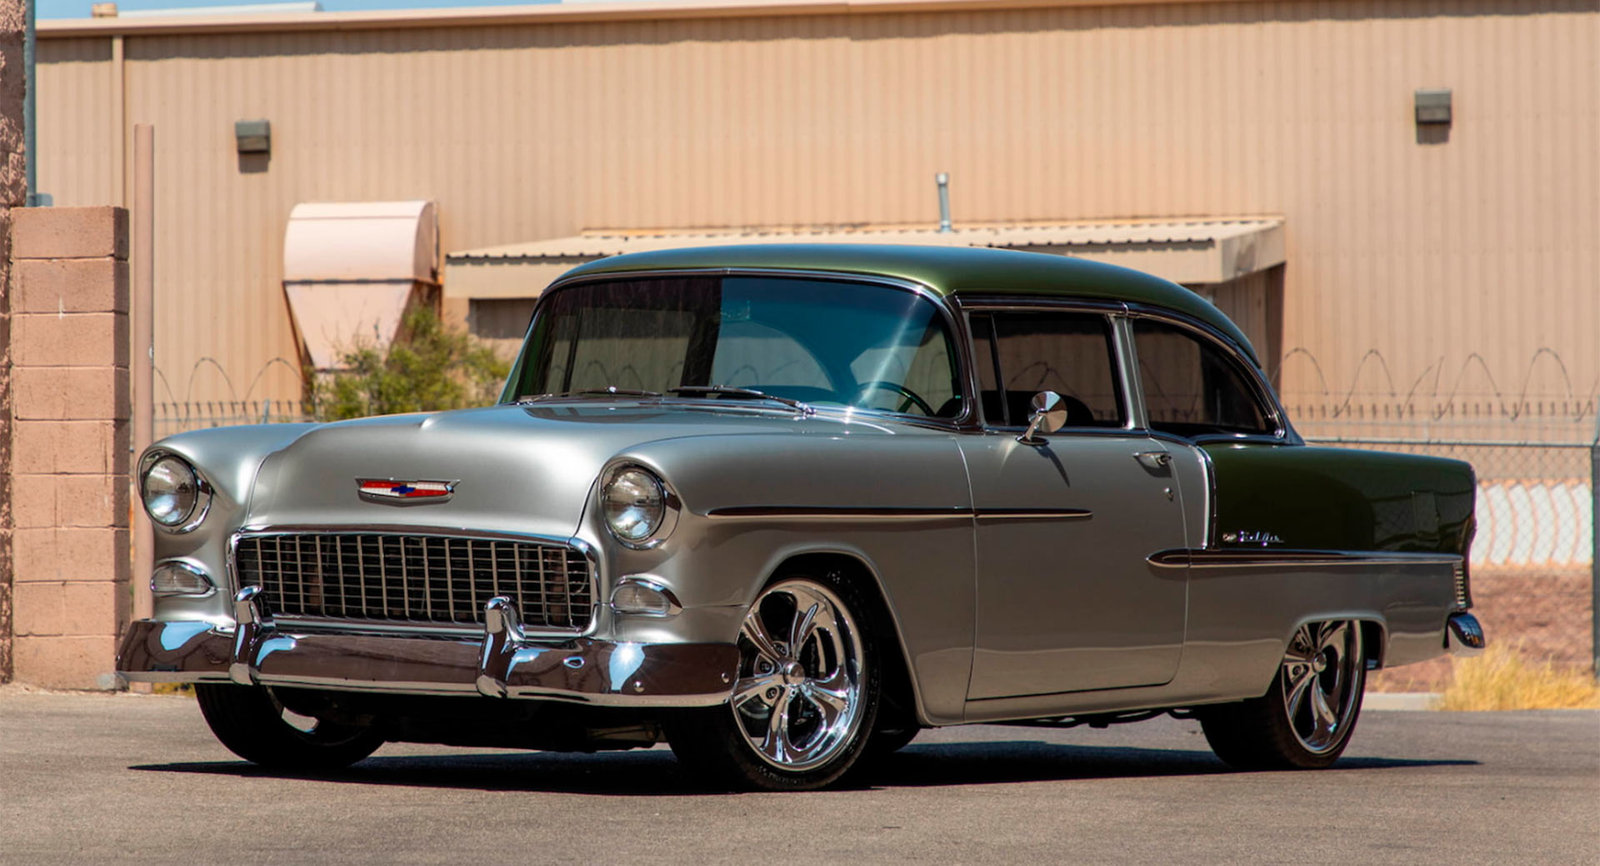 Chevrolet-Bel-Air-1